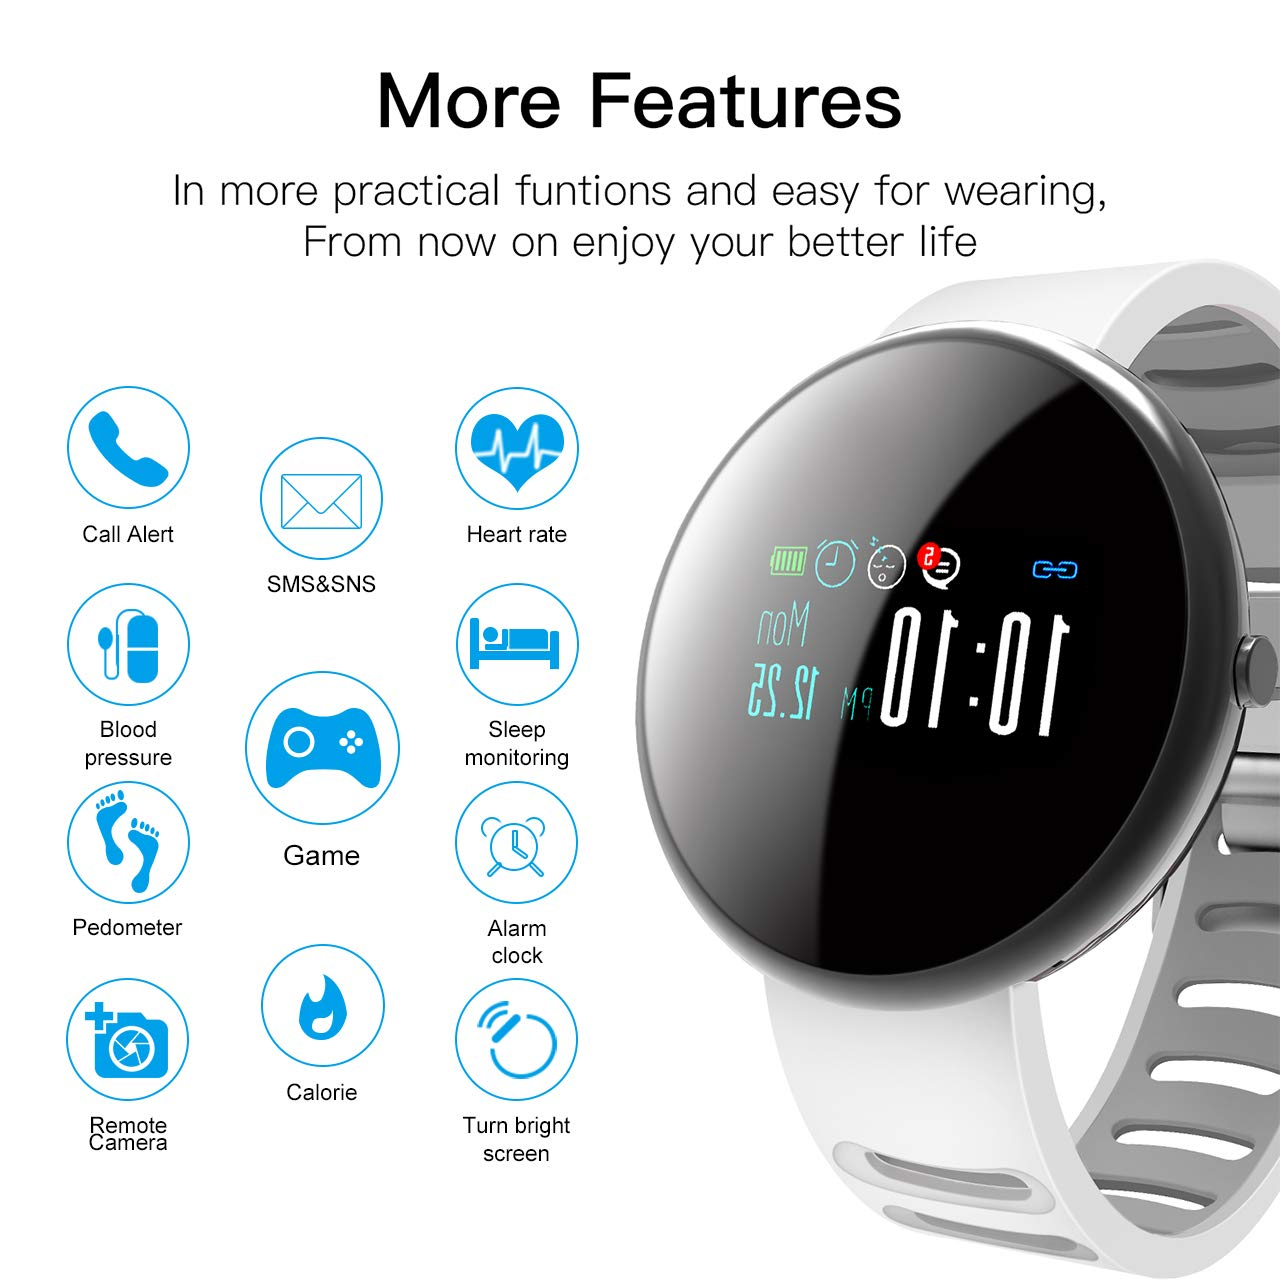 ROADTEC Fitness Tracker Smart Watches for Android, Bluetooth 4.0 Watch 5ATM IP67 Waterproof (White+Gray)